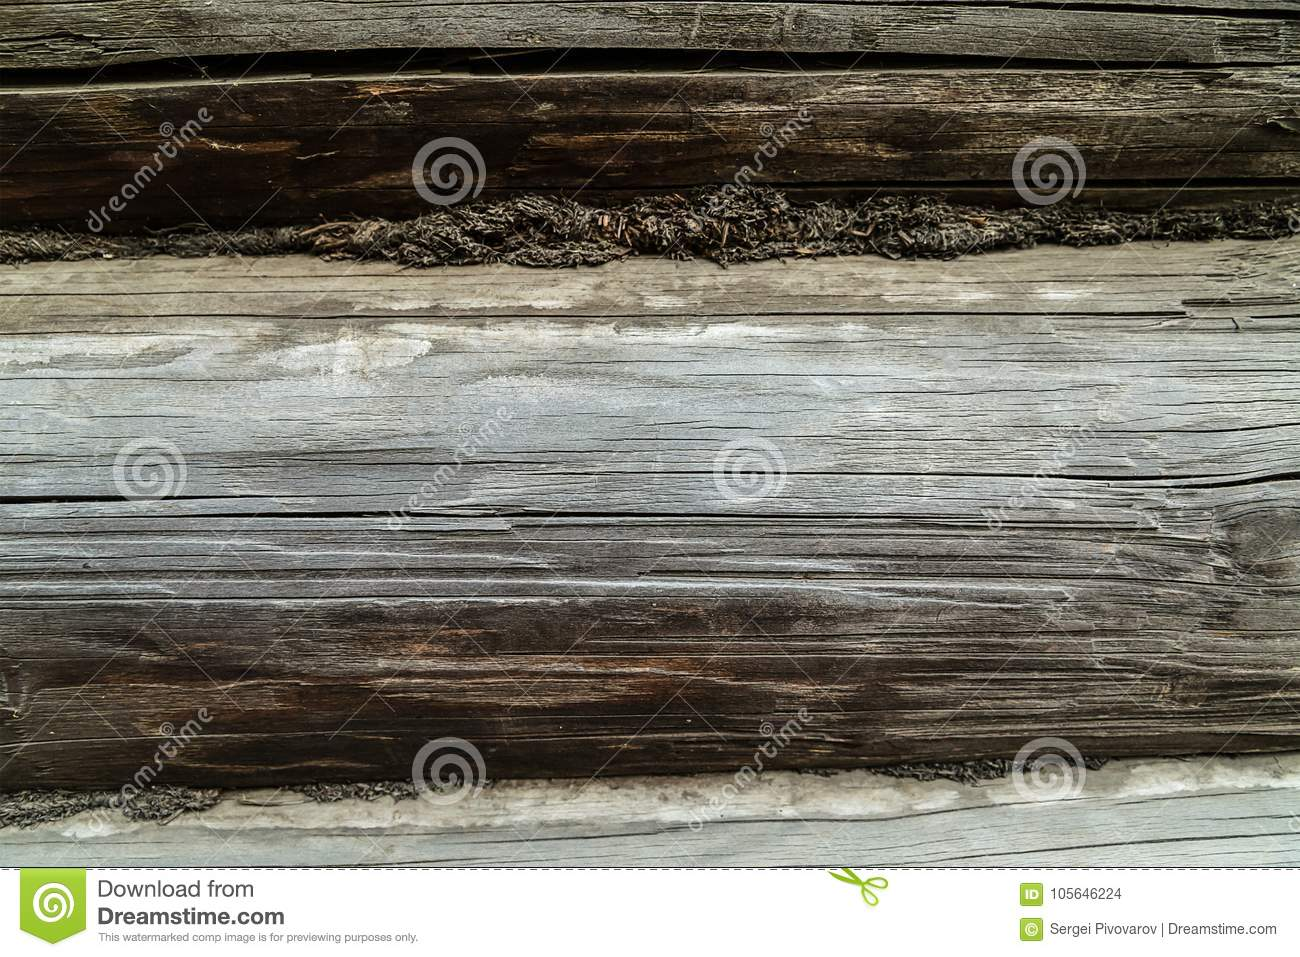 Download Wooden Background Texture Gray Log Crack Element Wall Rustic Base Web Design Stock Photo